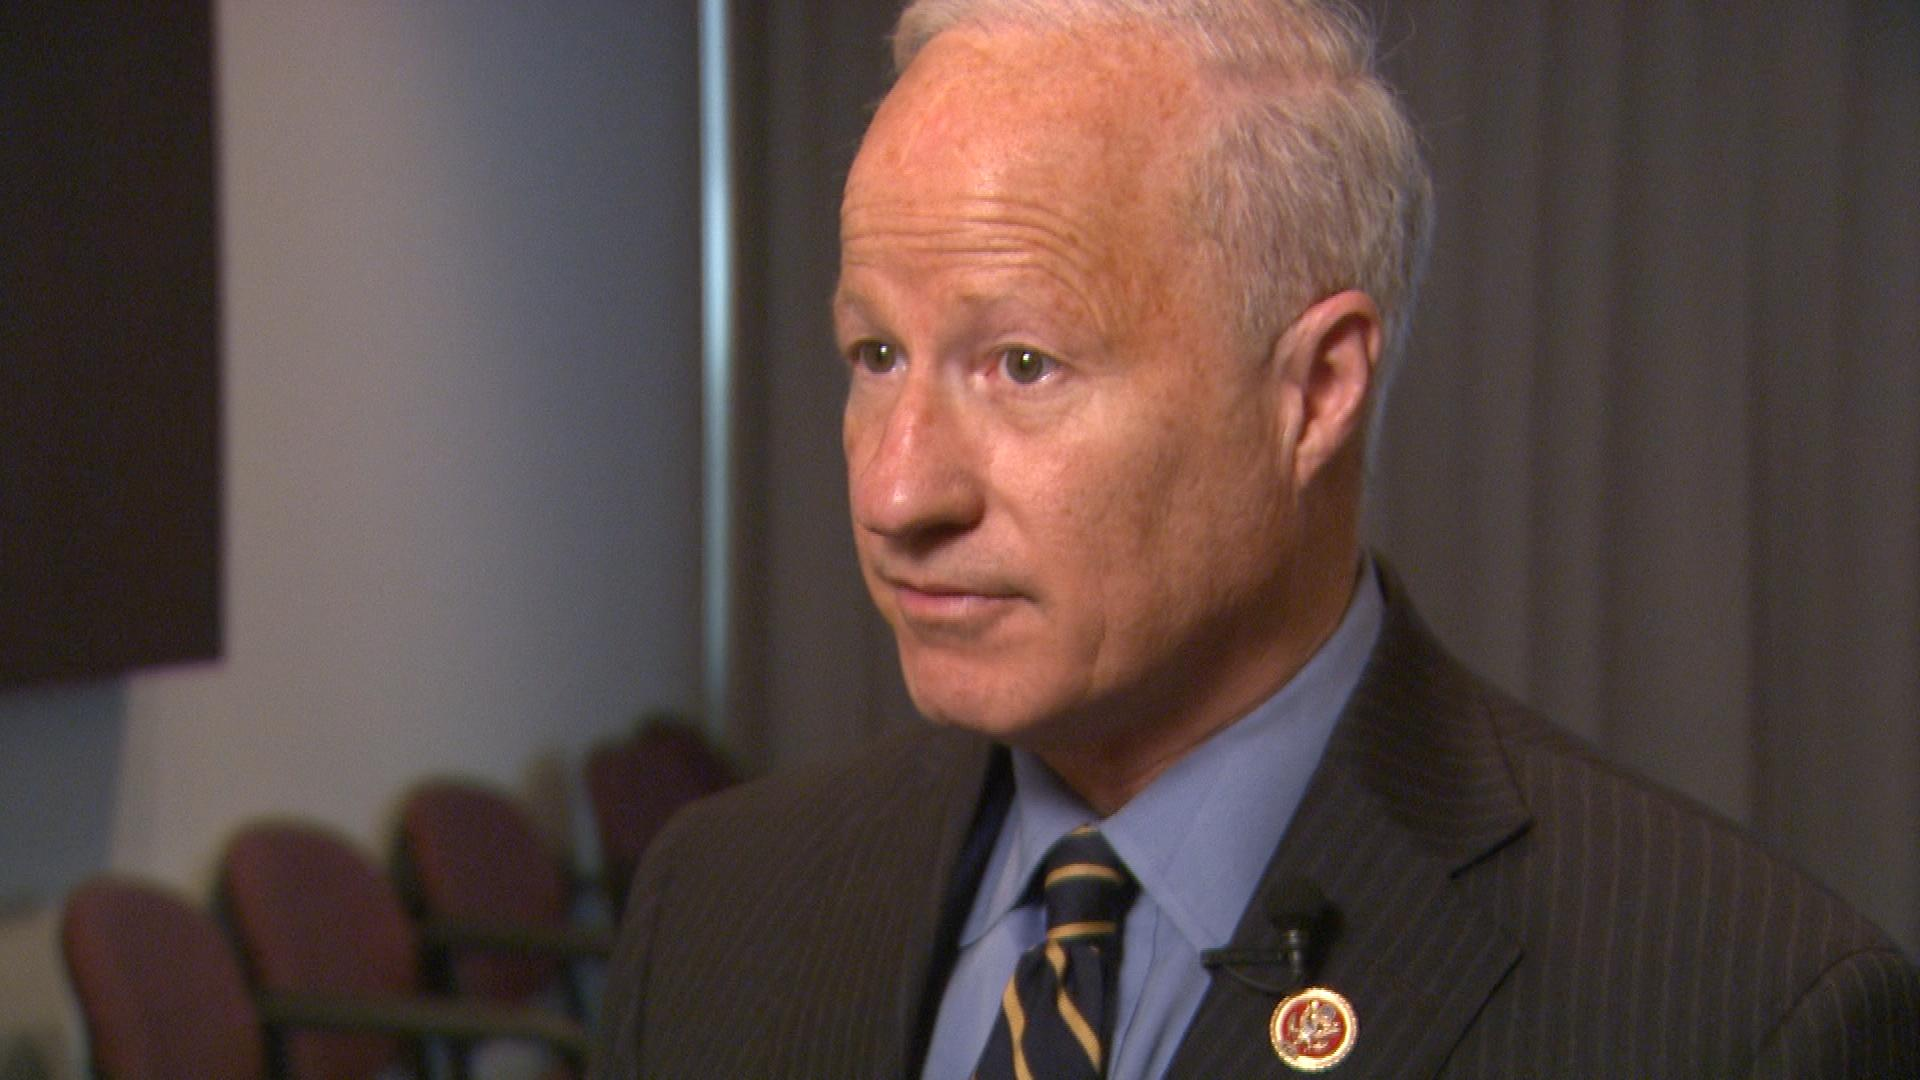 U.S. Rep. Mike Coffman, R-Colorado (credit: CBS)